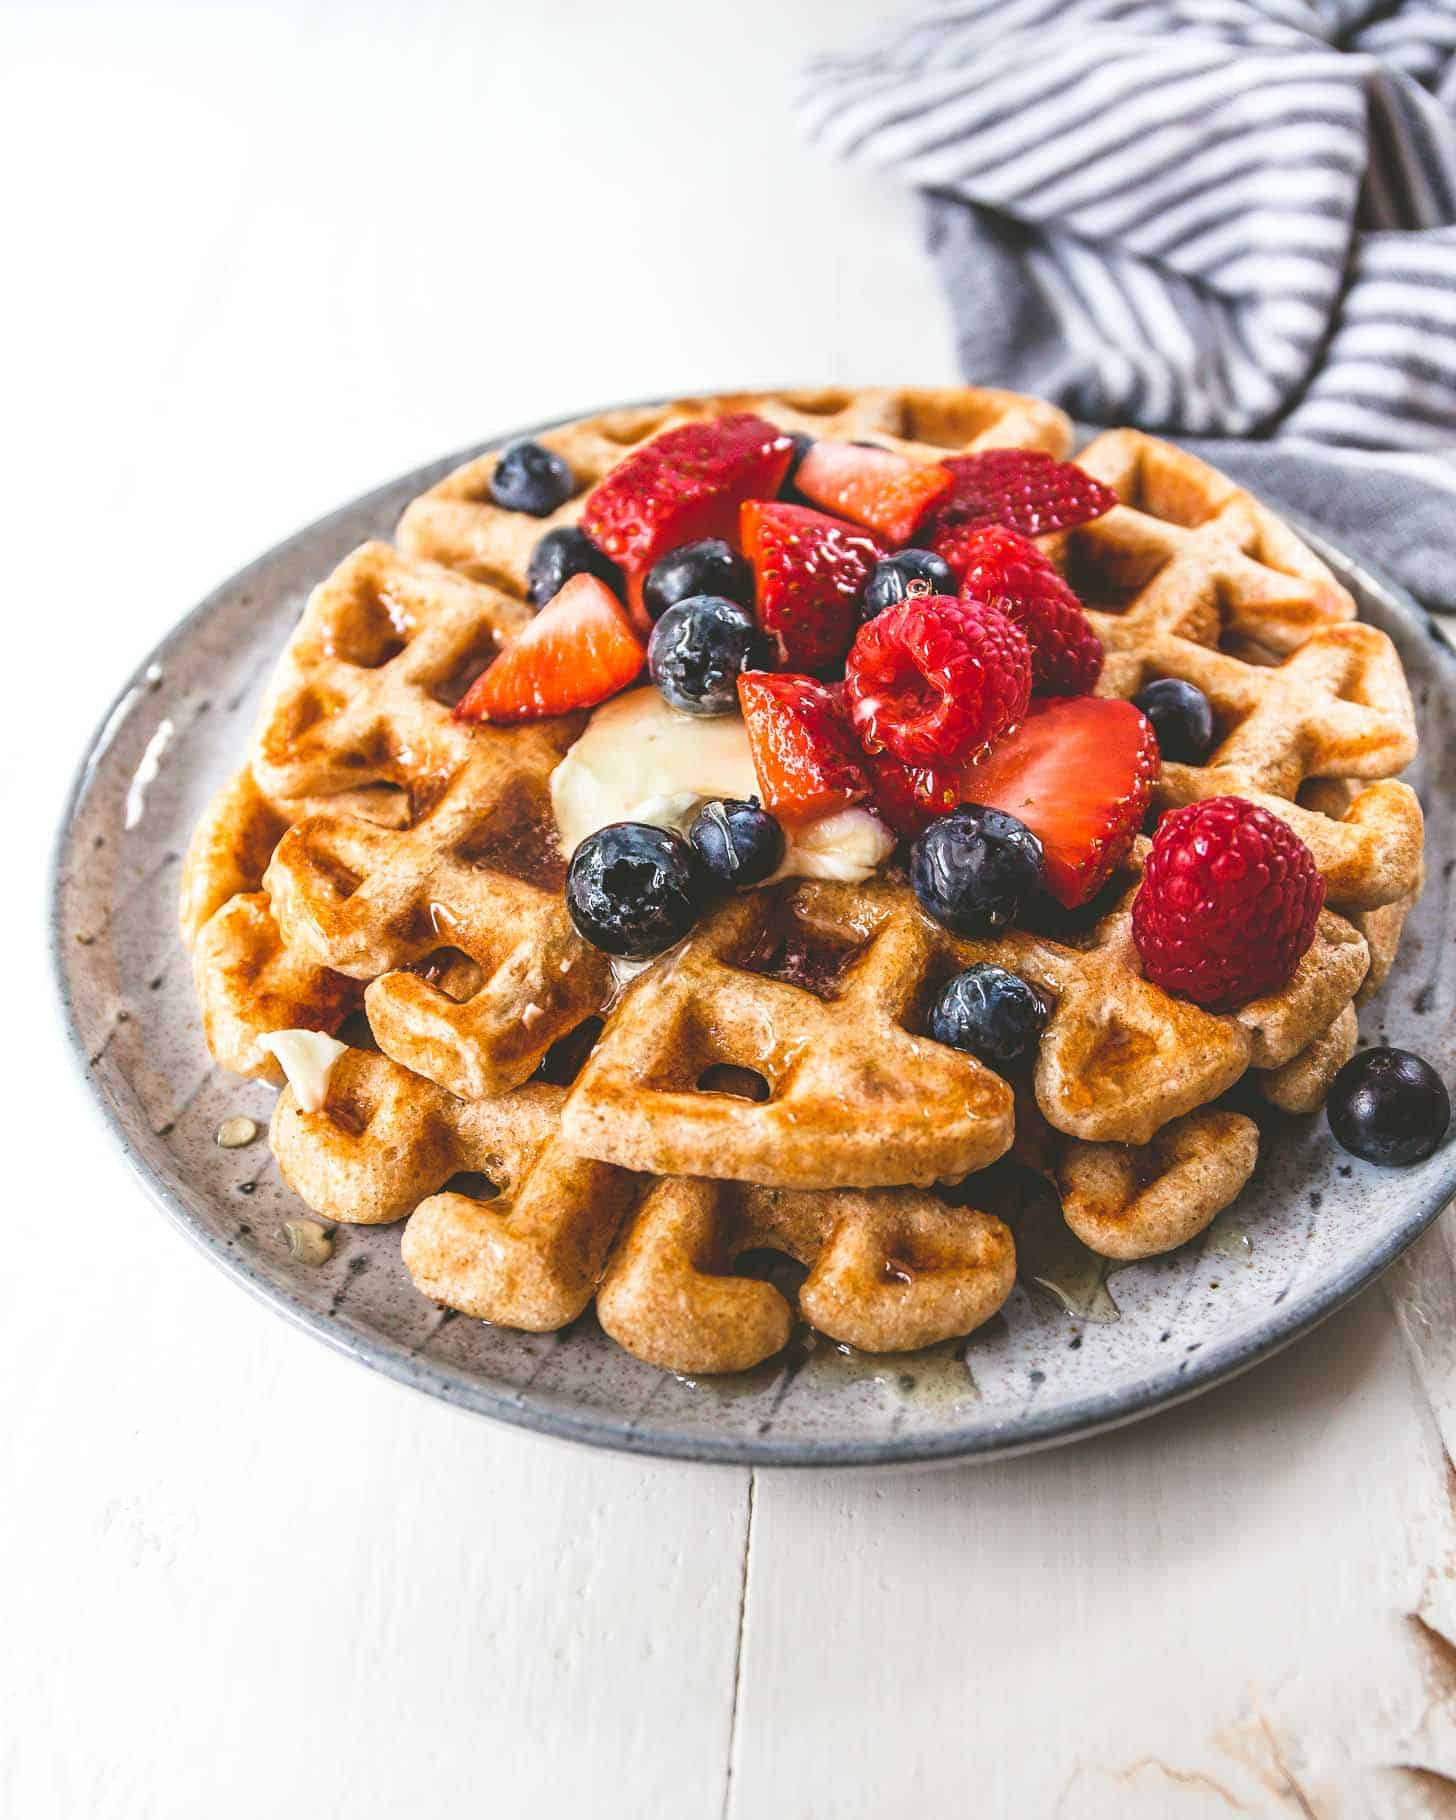 Whole Wheat Waffles on a white plate and topped with berries